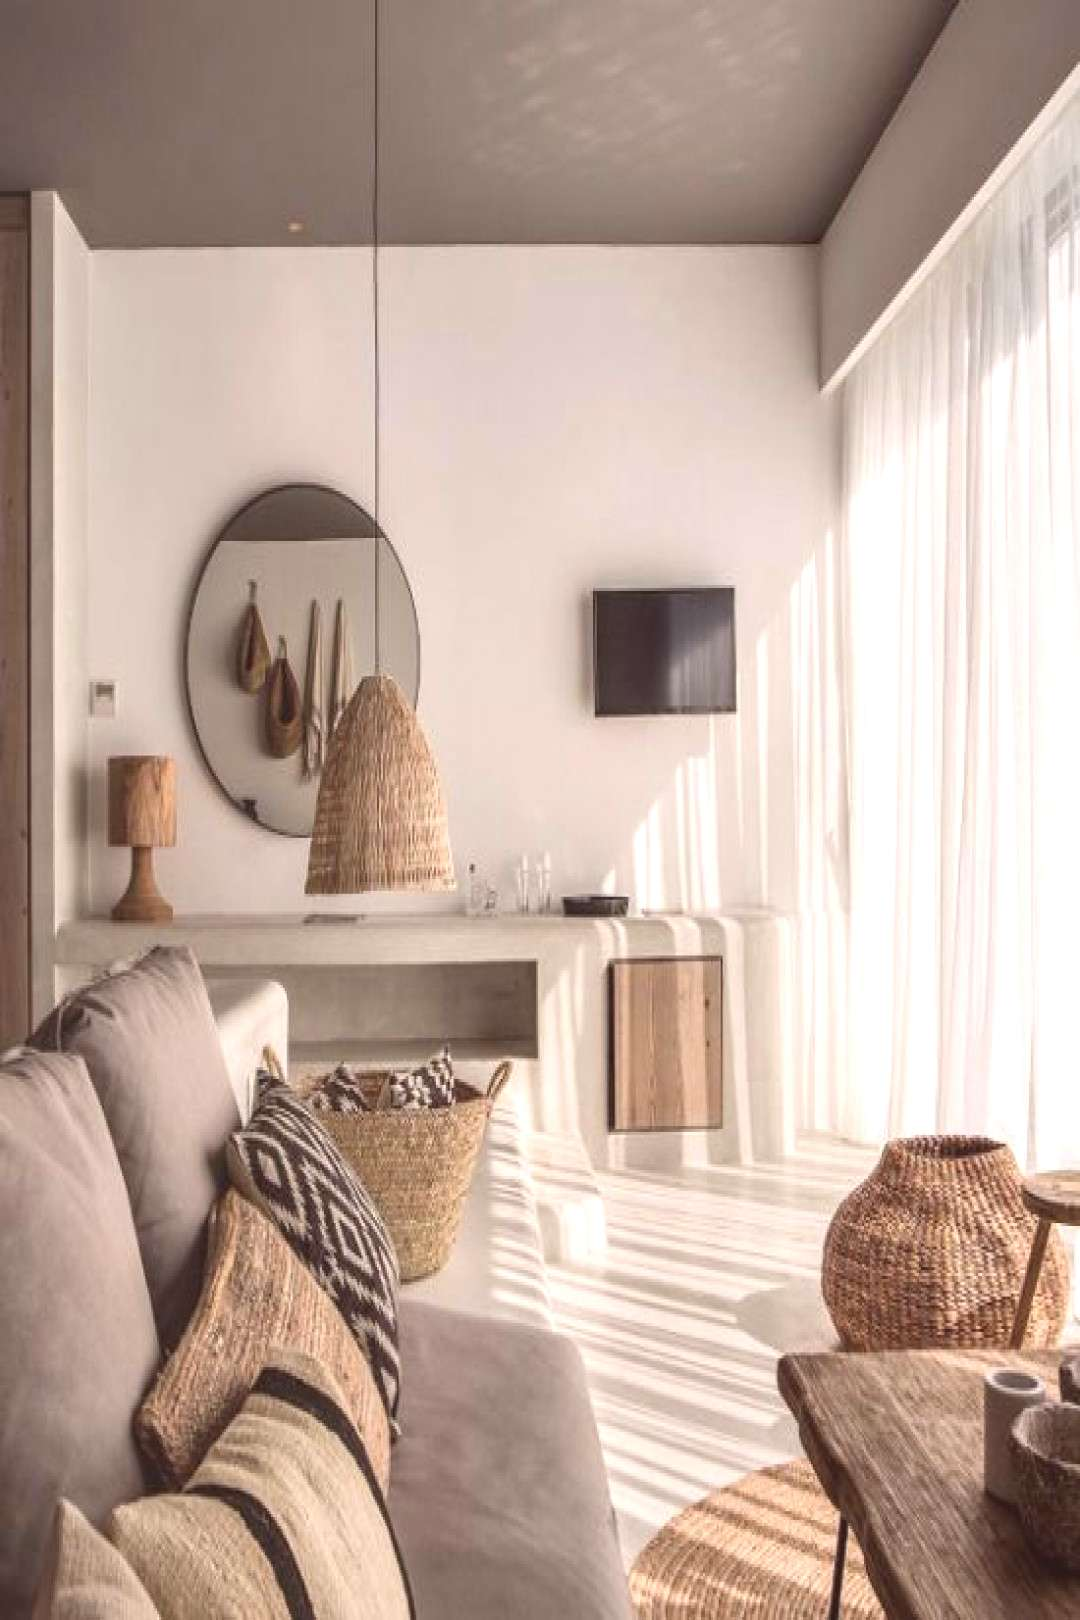 Natural palette, simple elegance and cozy atmosphere are the key of the success of this bohemian ho